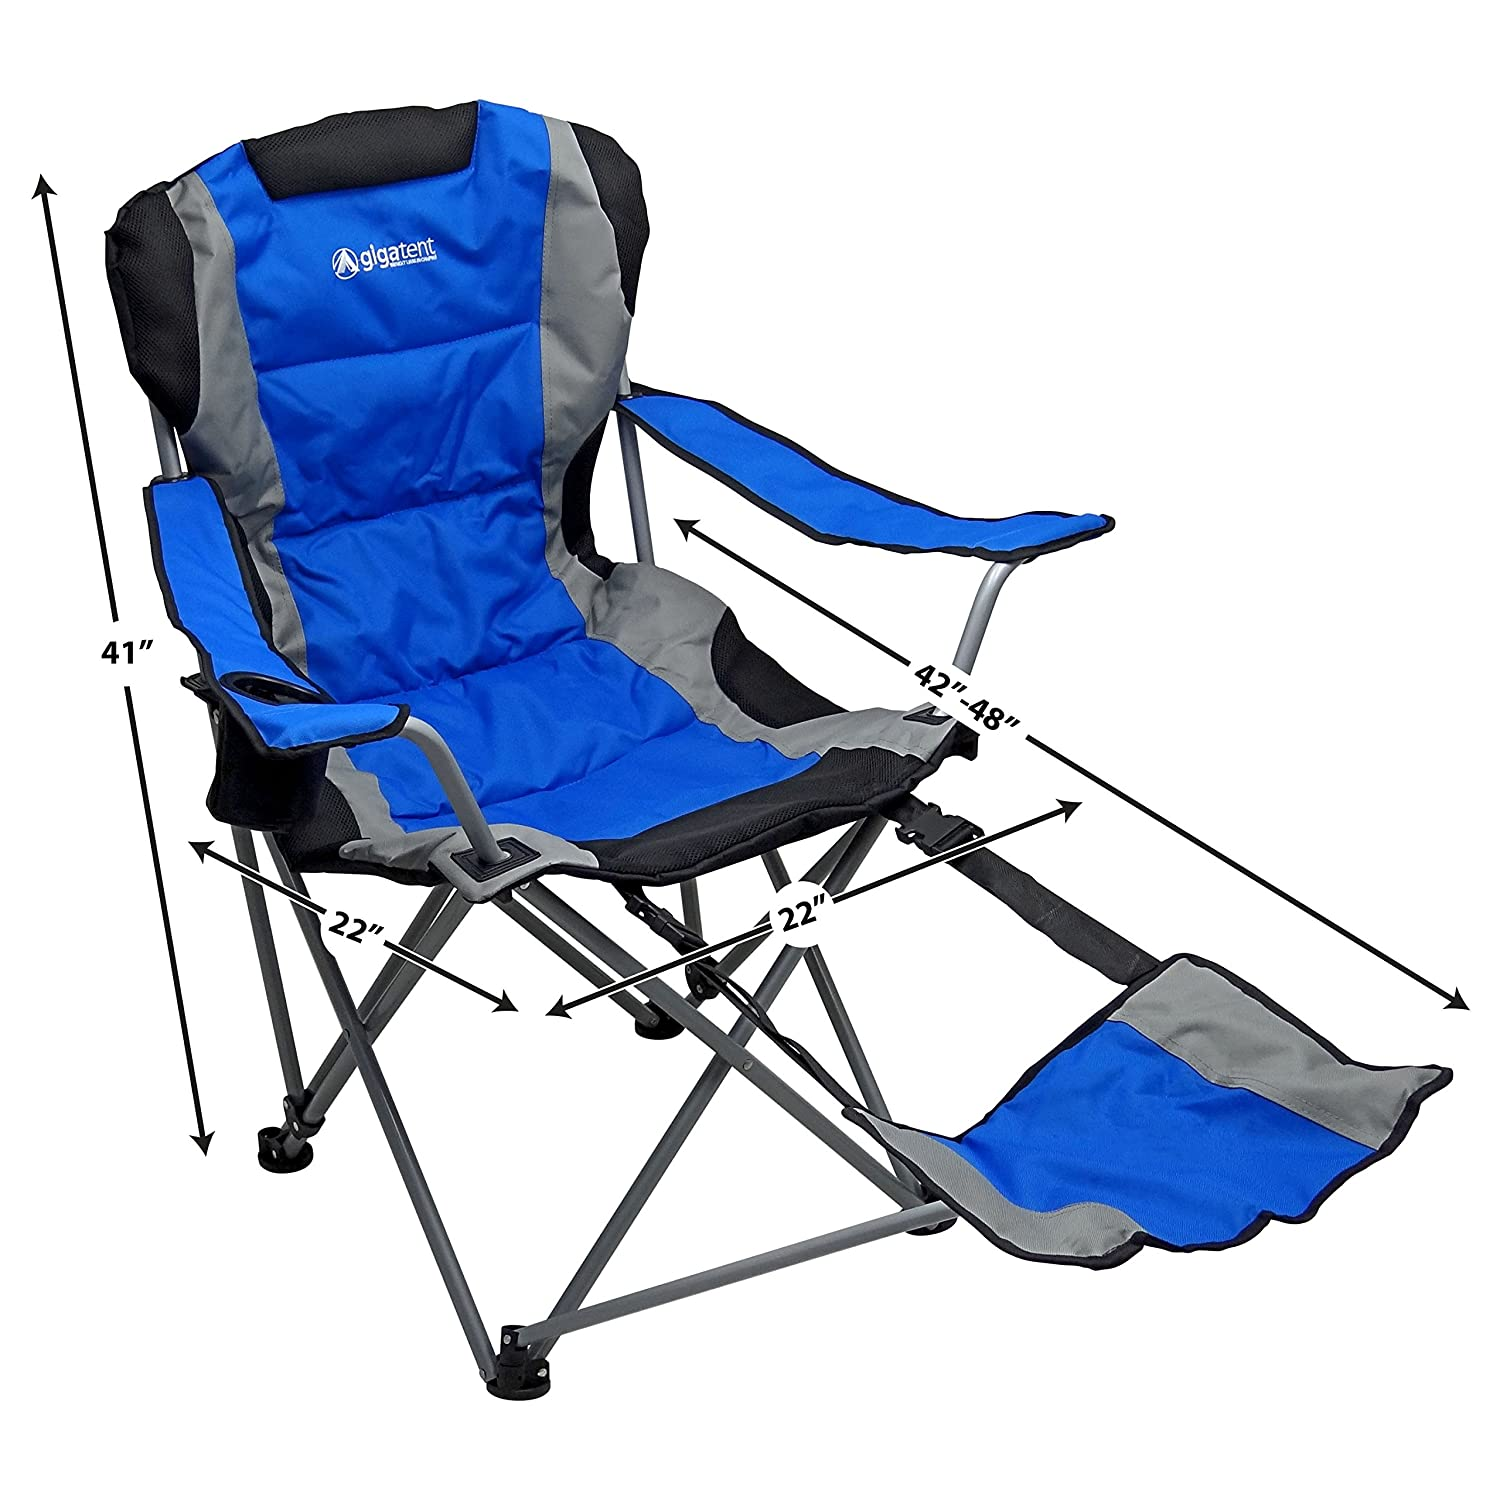 Magnificent Gigatent Cc 001 Camping Chair With Footrest Amazon Co Uk Theyellowbook Wood Chair Design Ideas Theyellowbookinfo